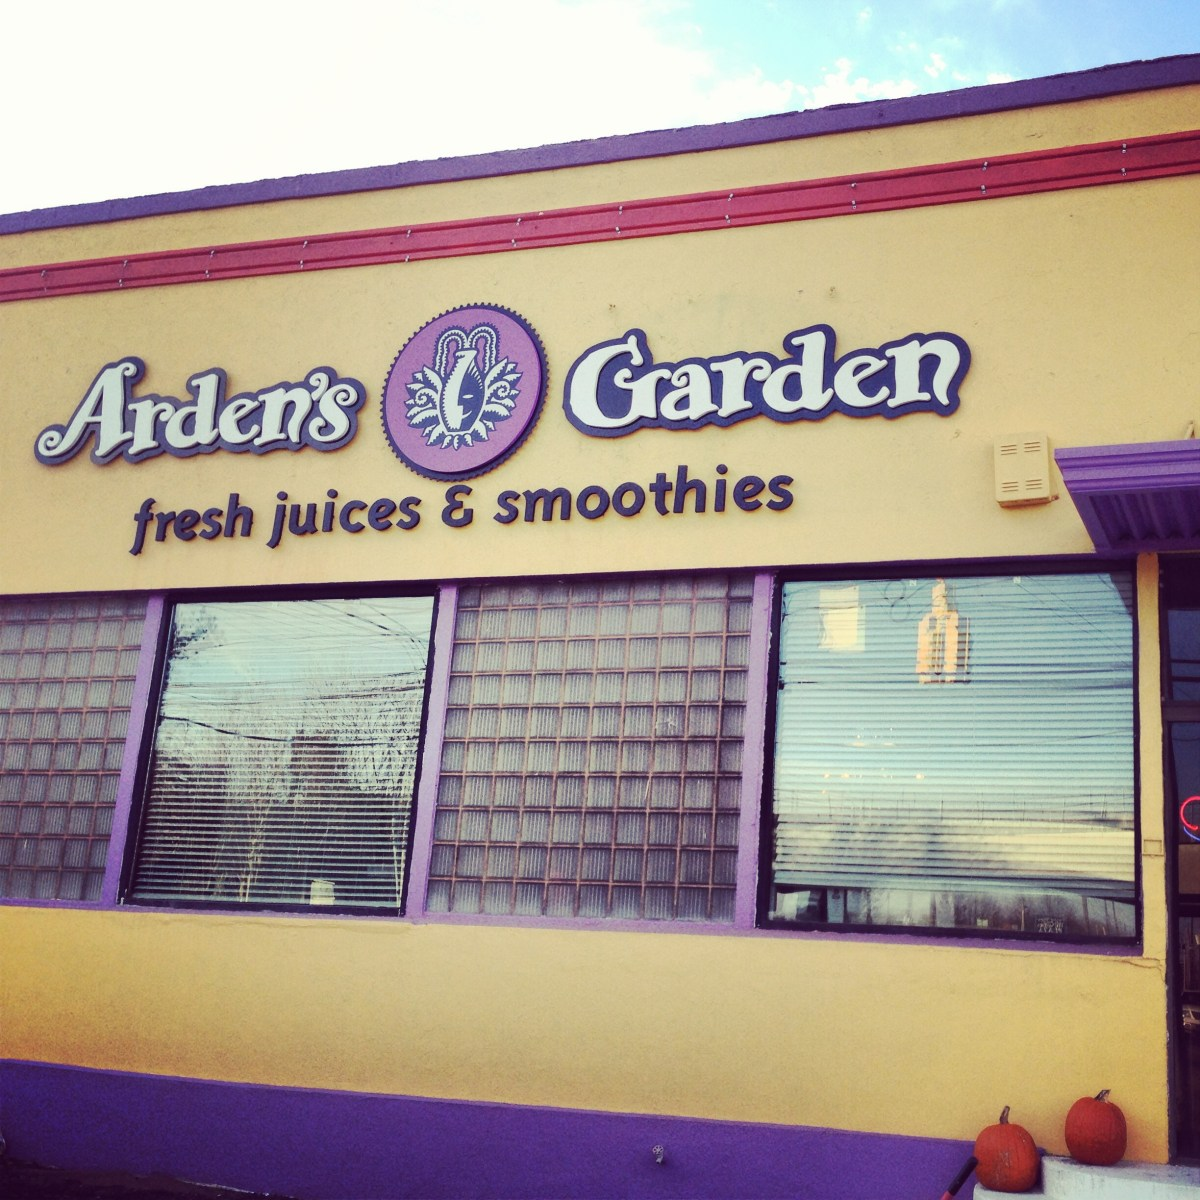 Start your day off with a grand slam from arden s garden can you